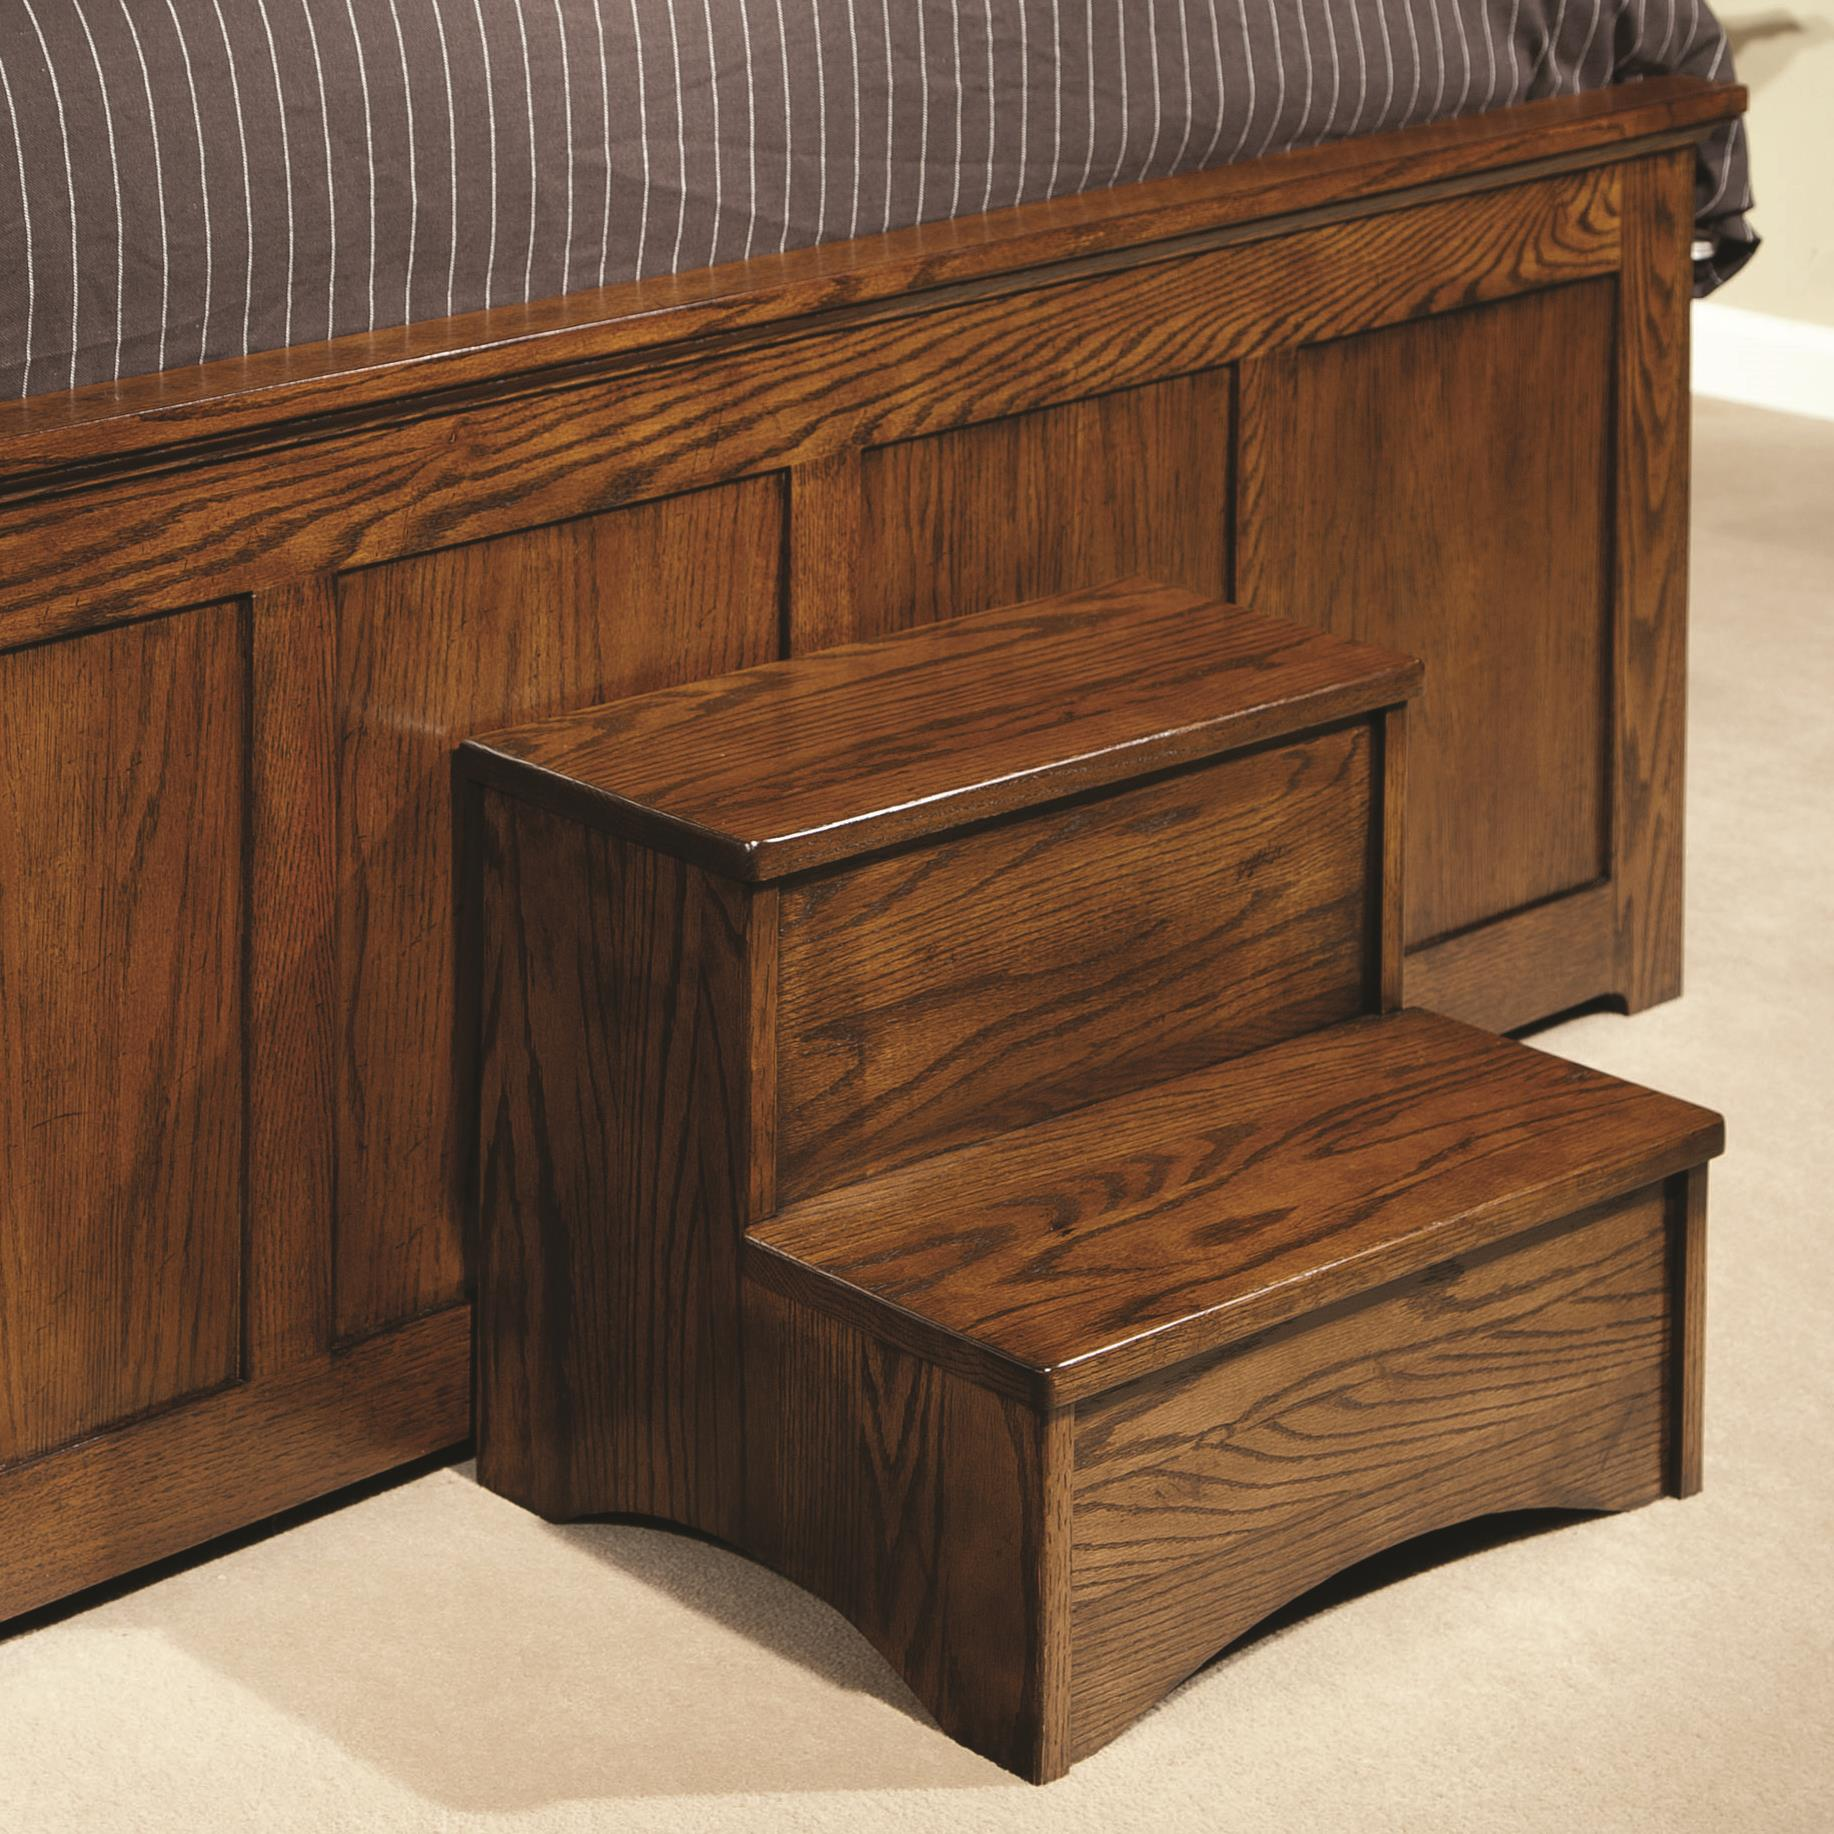 Intercon oak park bed step stool furniture options new for Furniture options